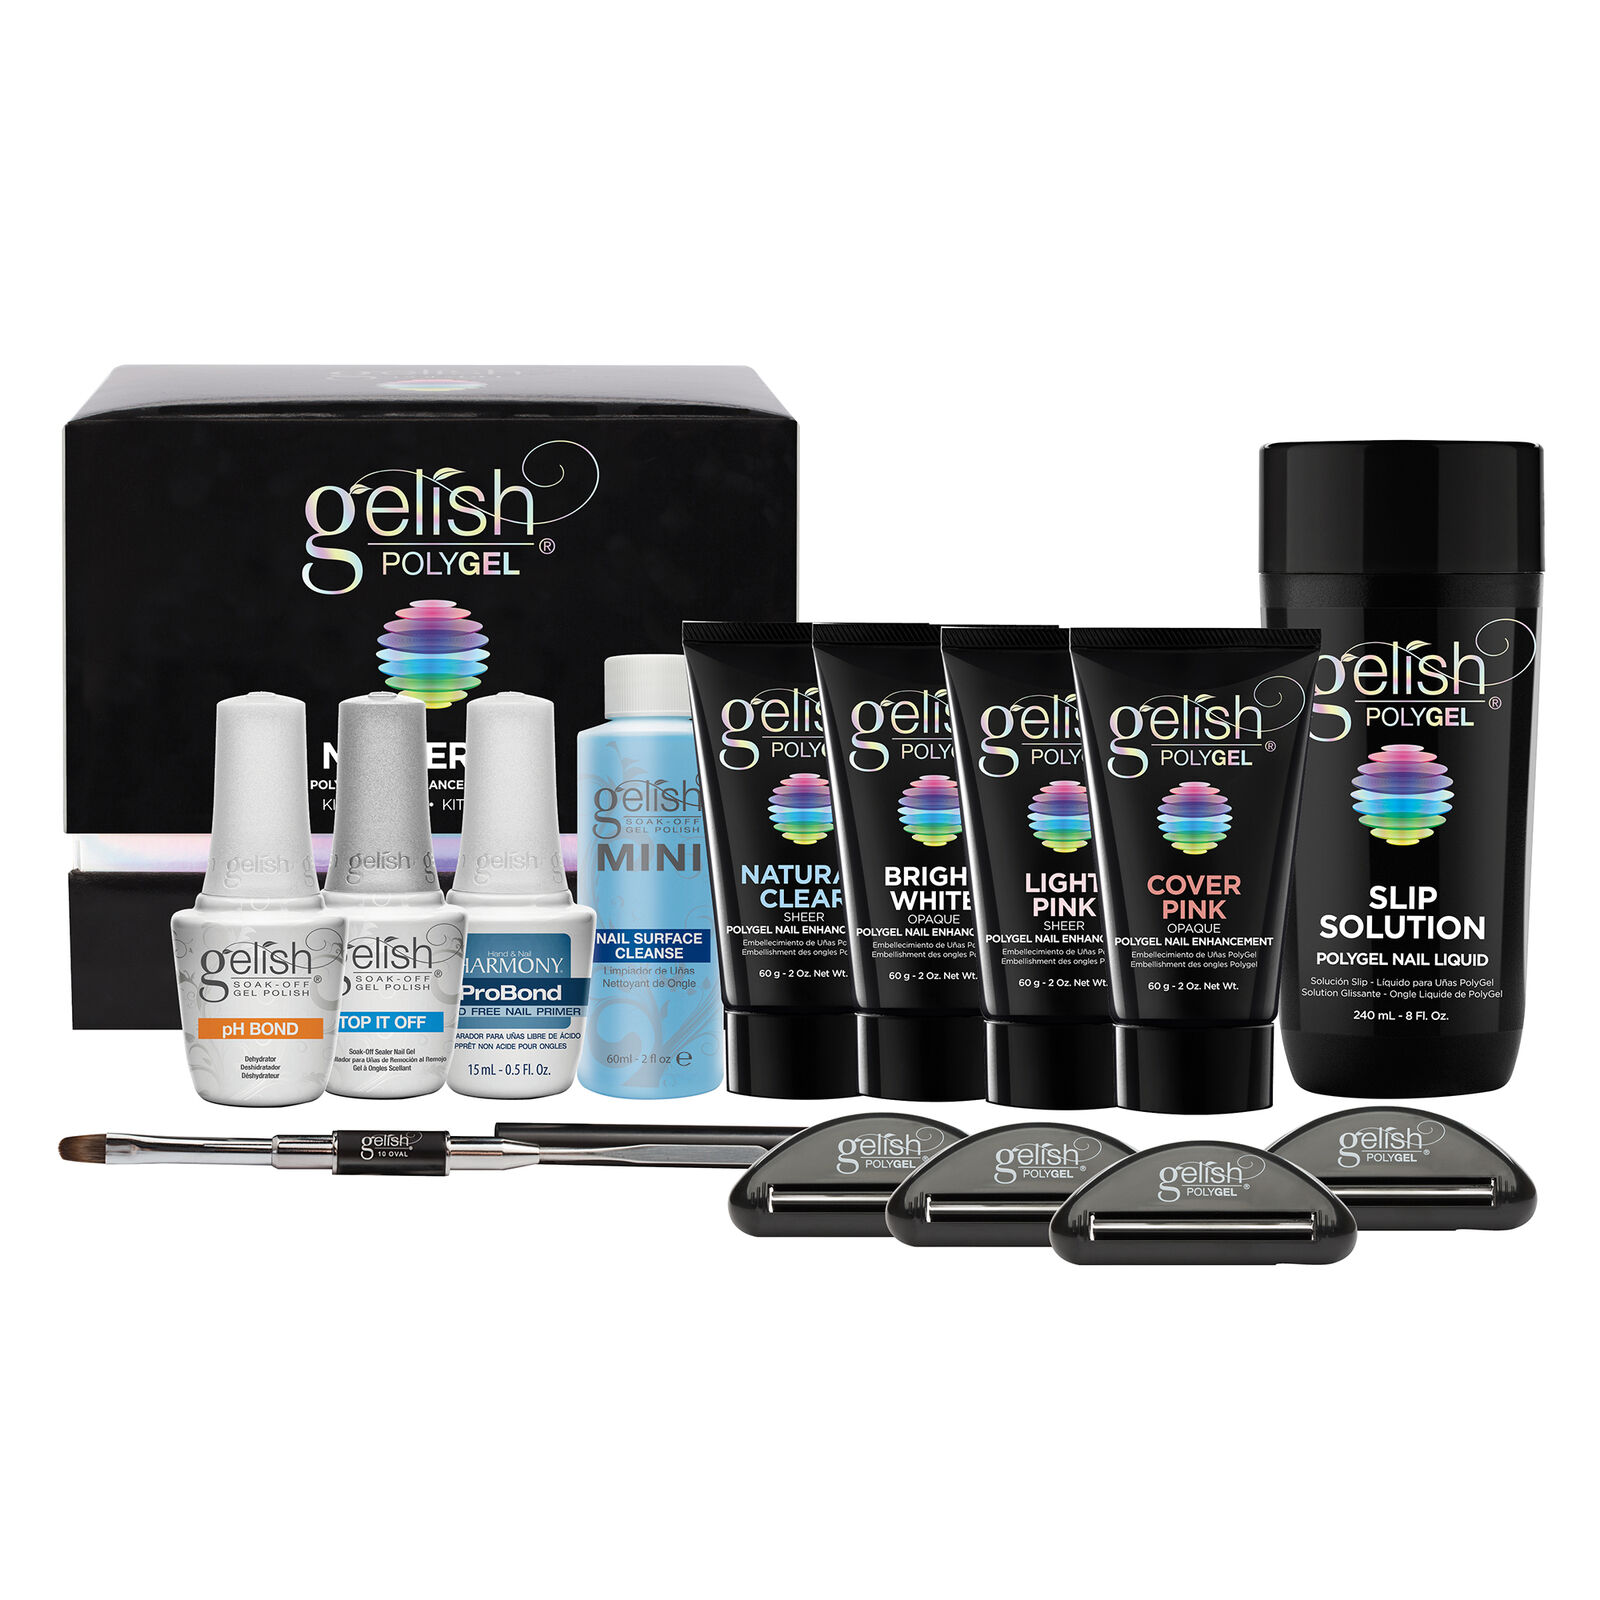 Gelish Polygel Professional Nail Technician Enhancement Master Kit ...